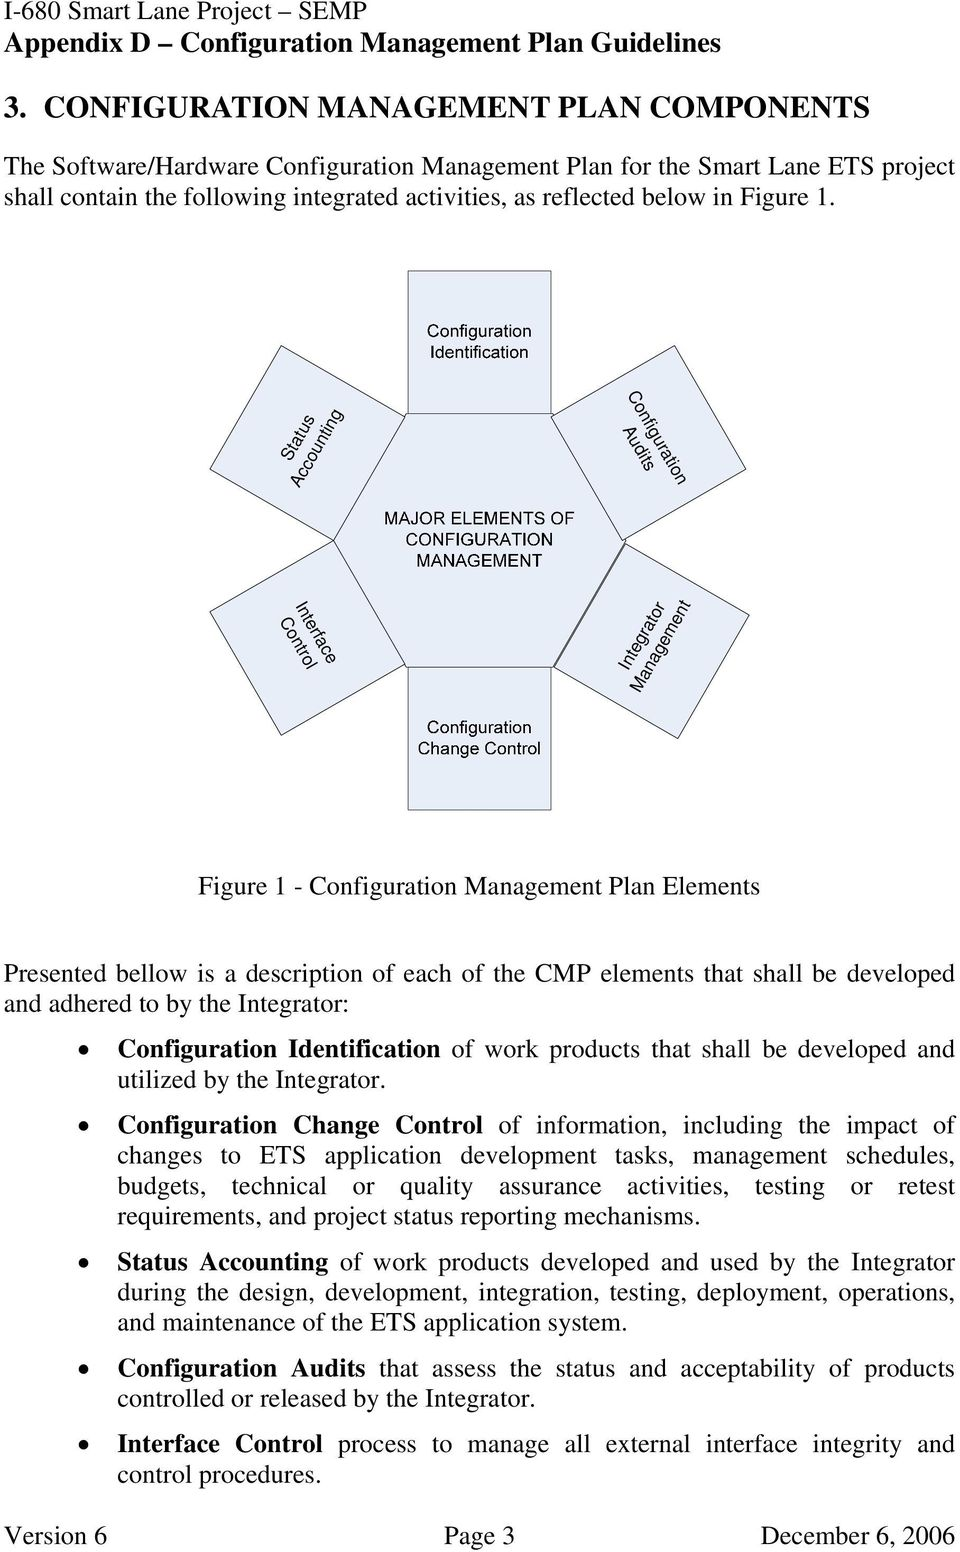 Status Accounting Configuration Audits Interface Control Integrator Management Figure 1 - Configuration Management Plan Elements Presented bellow is a description of each of the CMP elements that